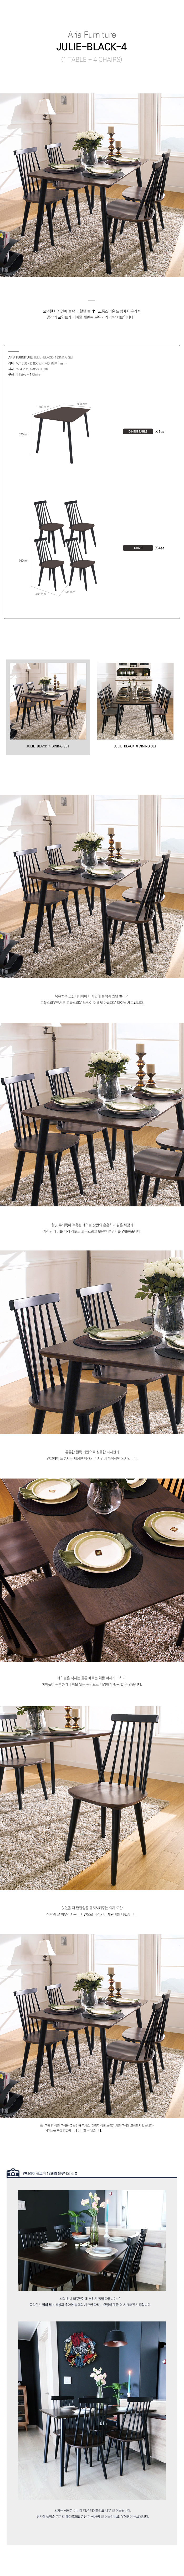 4_3_julie_black-4_dining_set.jpg